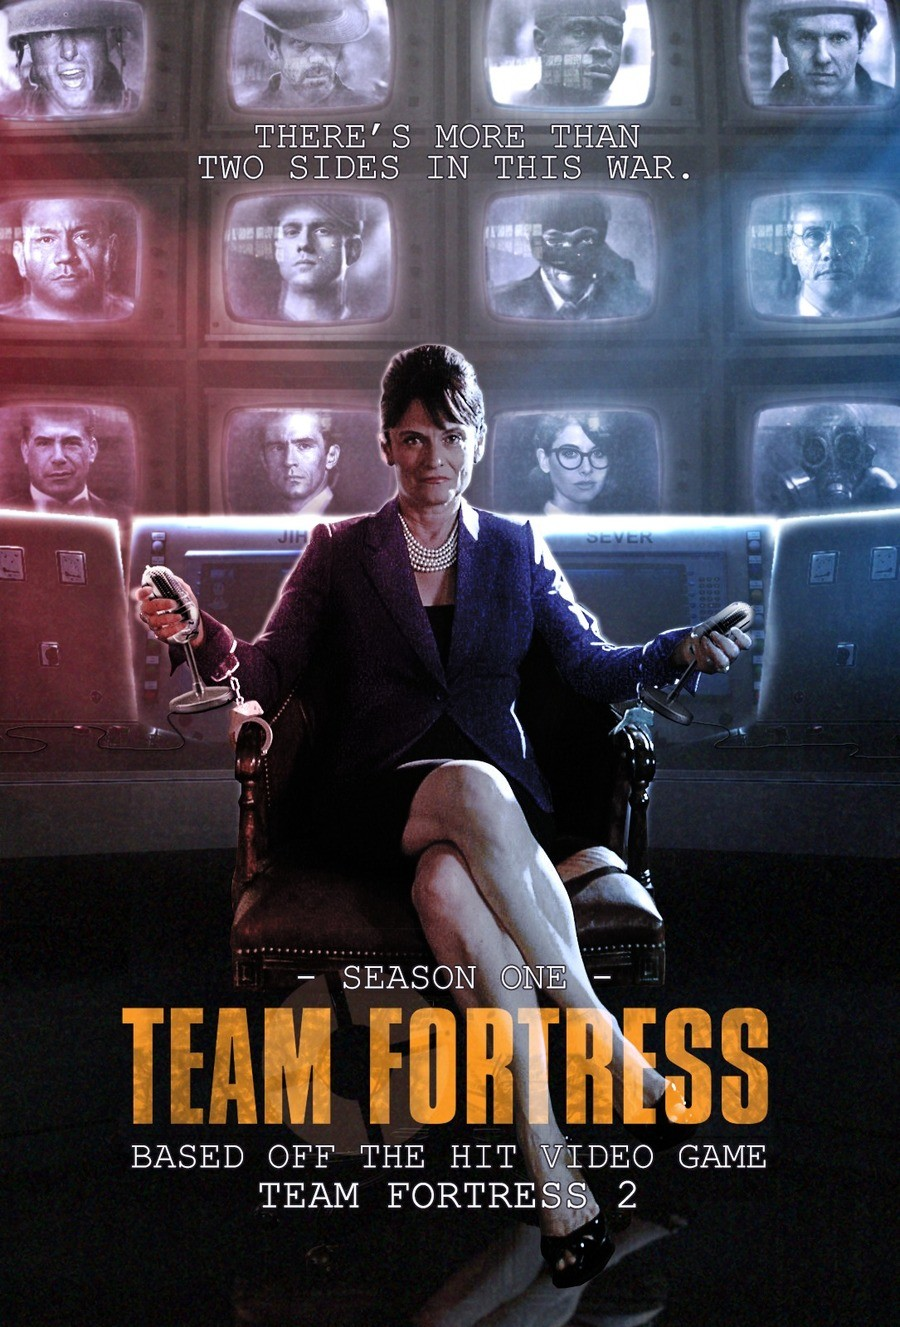 Fake TF2 TV Series Cover. Sauce: . ii alii'). lall). I'd prefer an animated series, especially if the writers of the comic were involved.